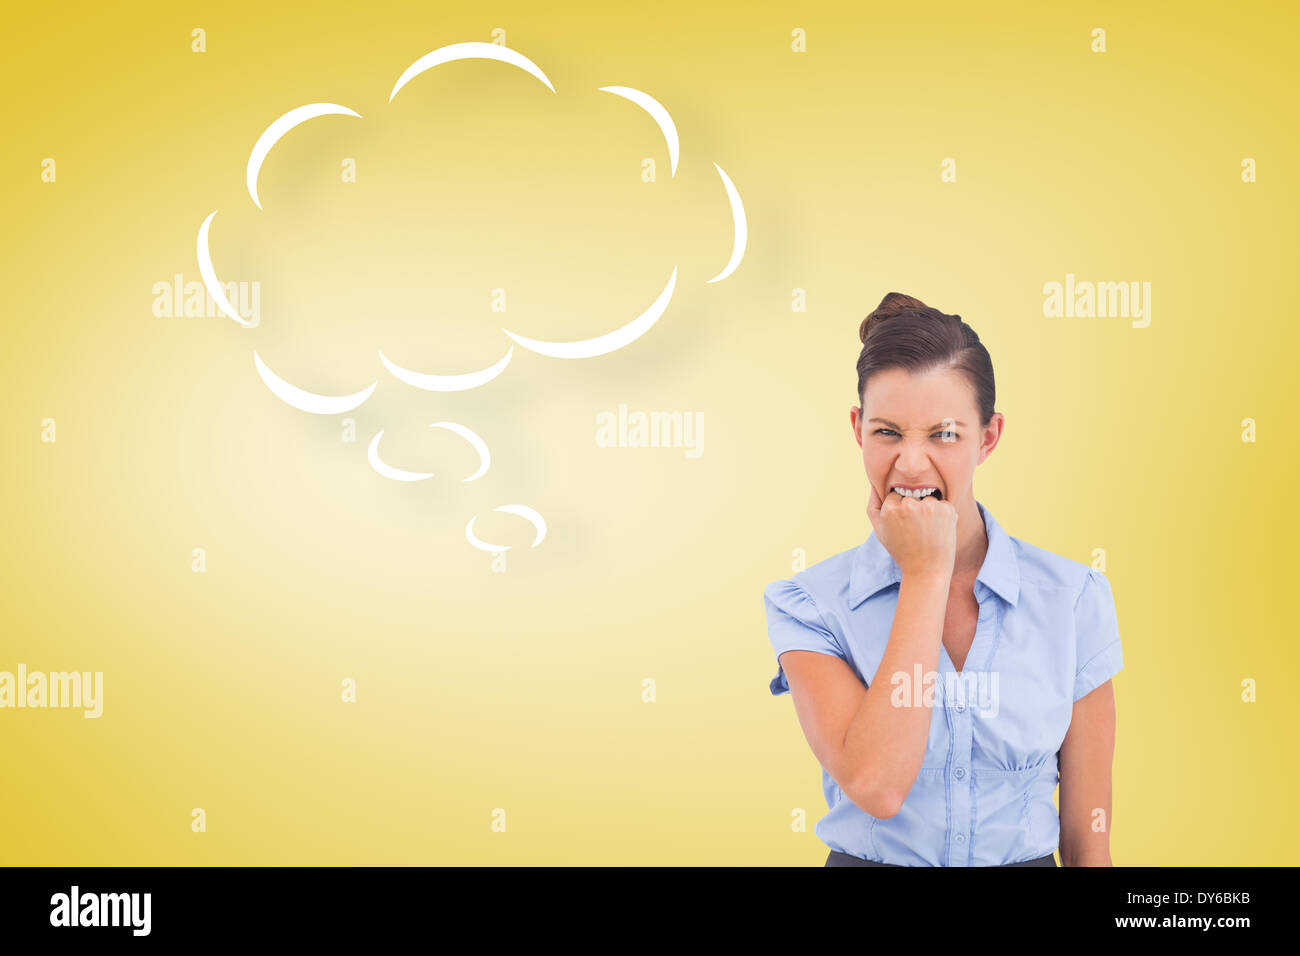 Composite image of furious businesswoman looking at the camera with speech bubble - Stock Image